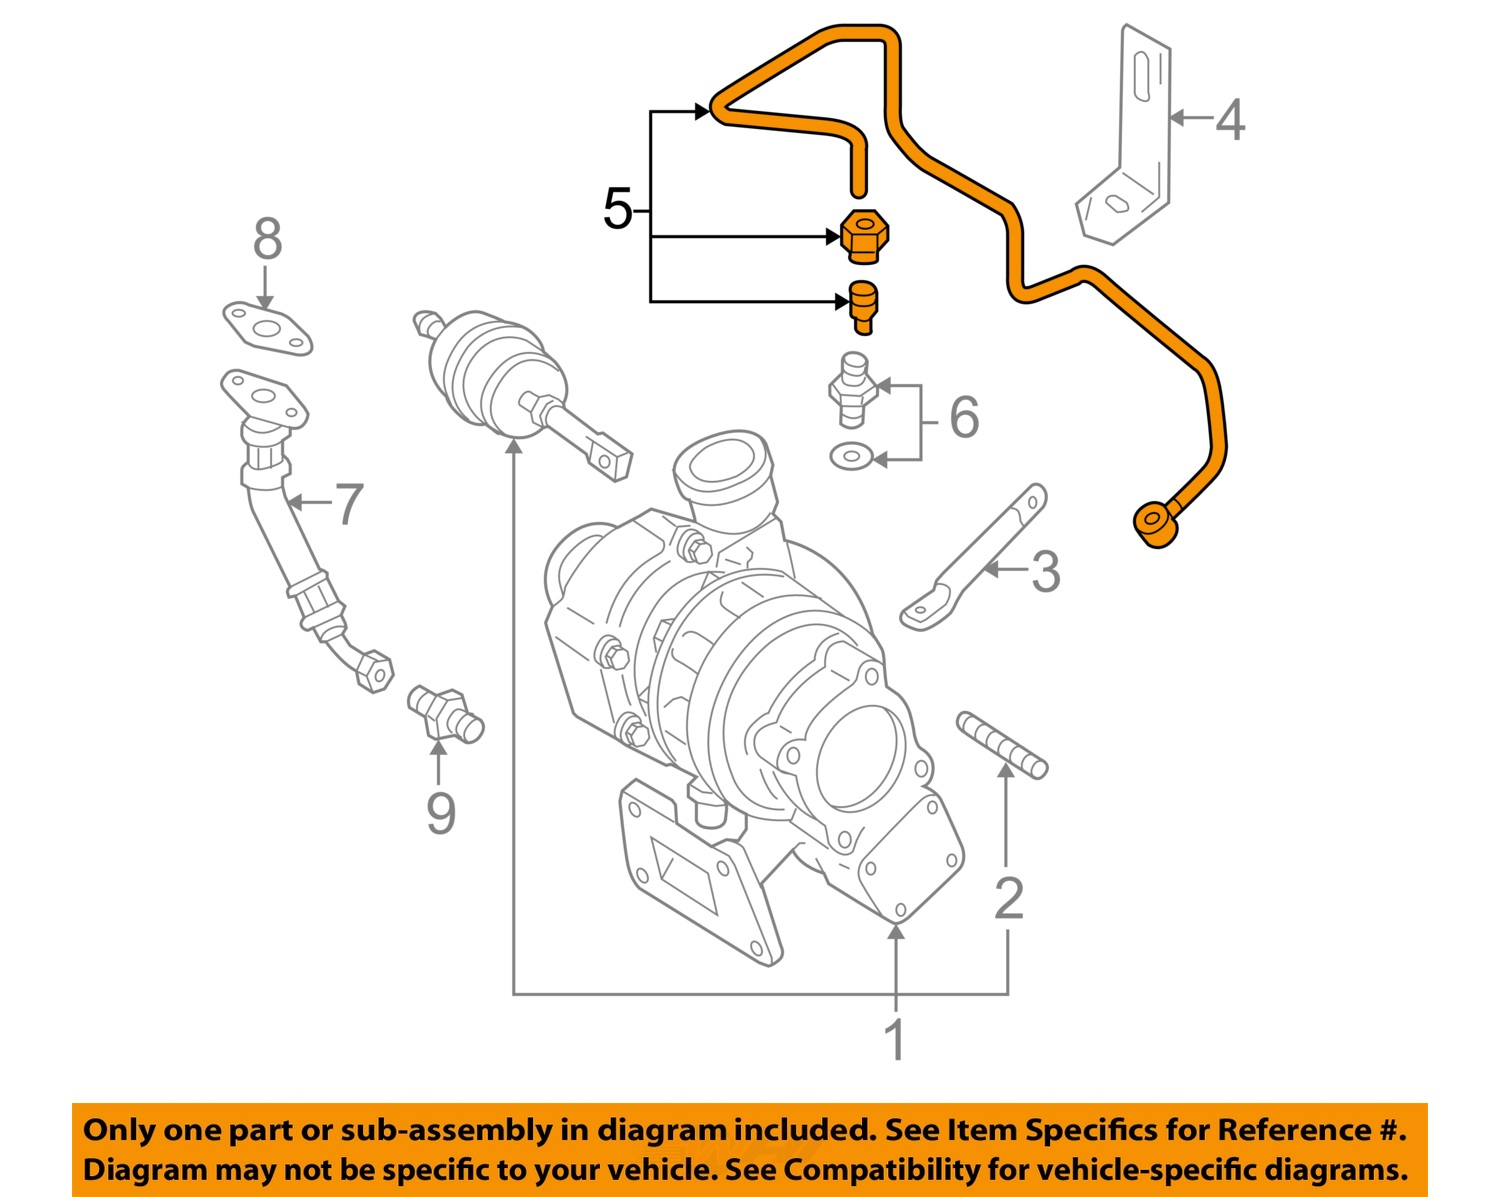 1984 Coachman Motorhome Wiring Diagram Starting Know About Fj40 Harness For Gm Auto